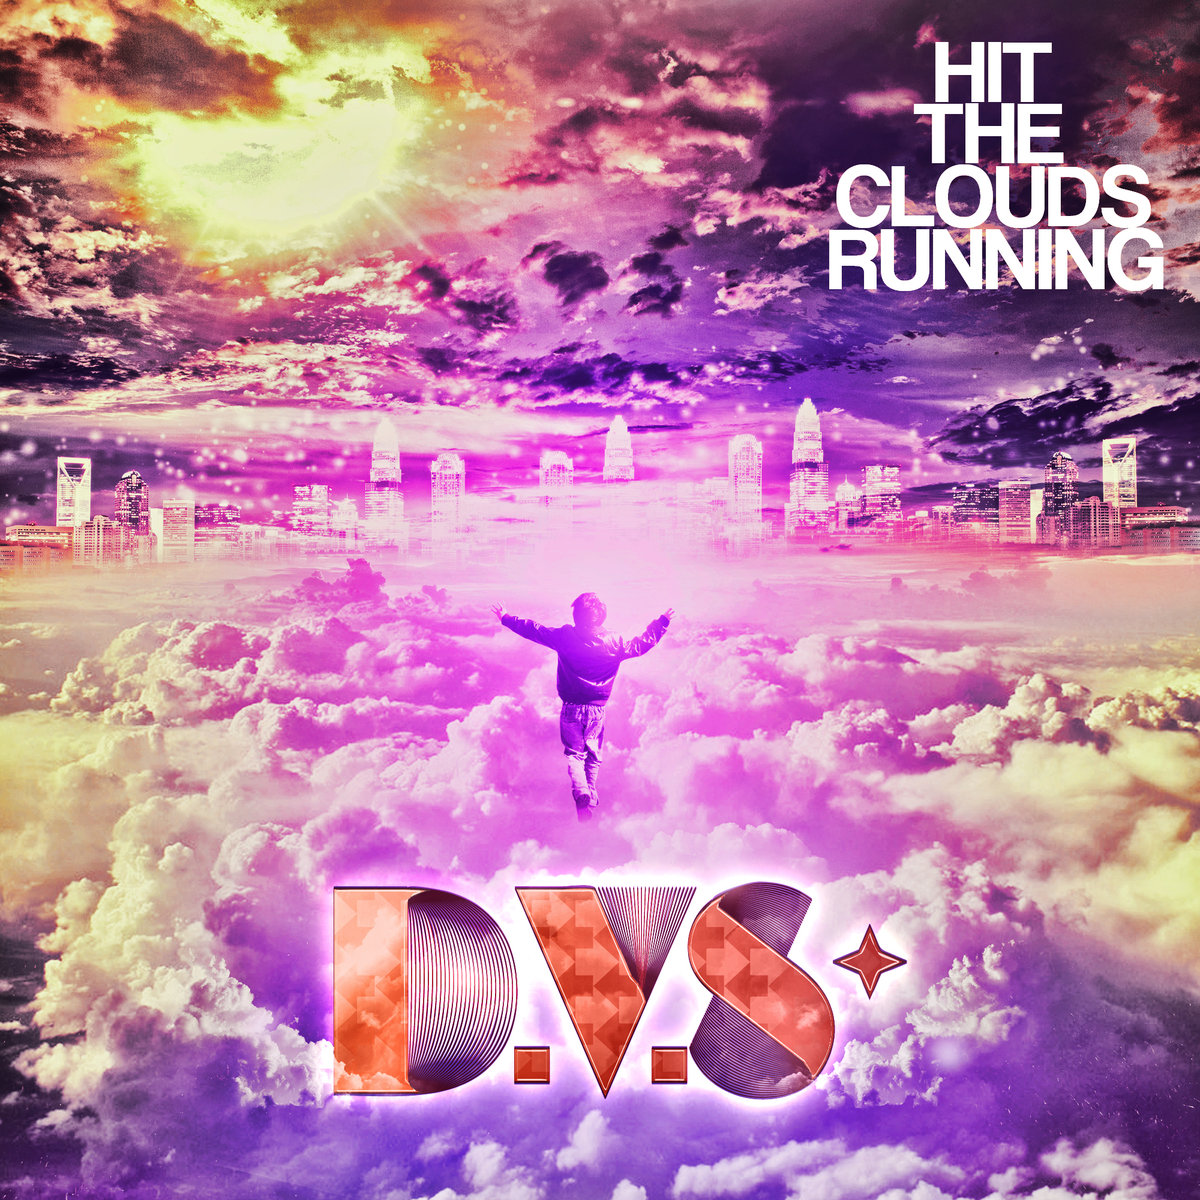 D.V.S* feat. Chantel - Roll the Dice @ 'Hit The Clouds Running' album (electronica, guitar)